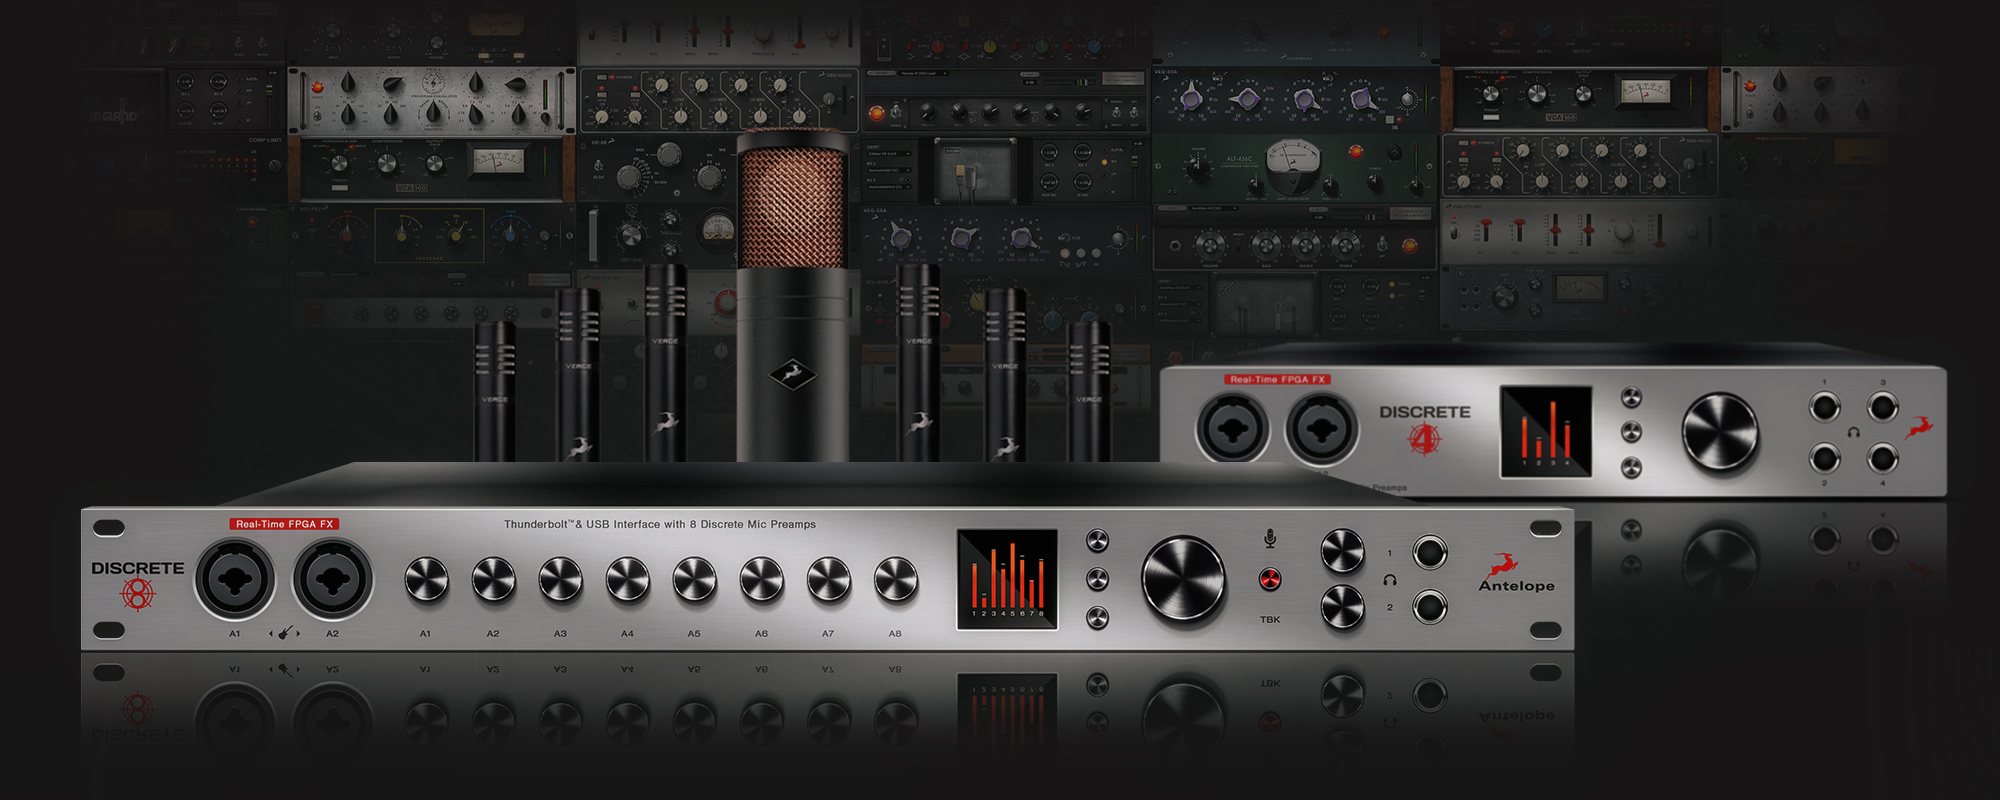 Antelope Audio Announces Discrete 8 Console Grade Mic Preamp The Preamplifier With Dual Recording Interface And Accompanying Modelling Mics